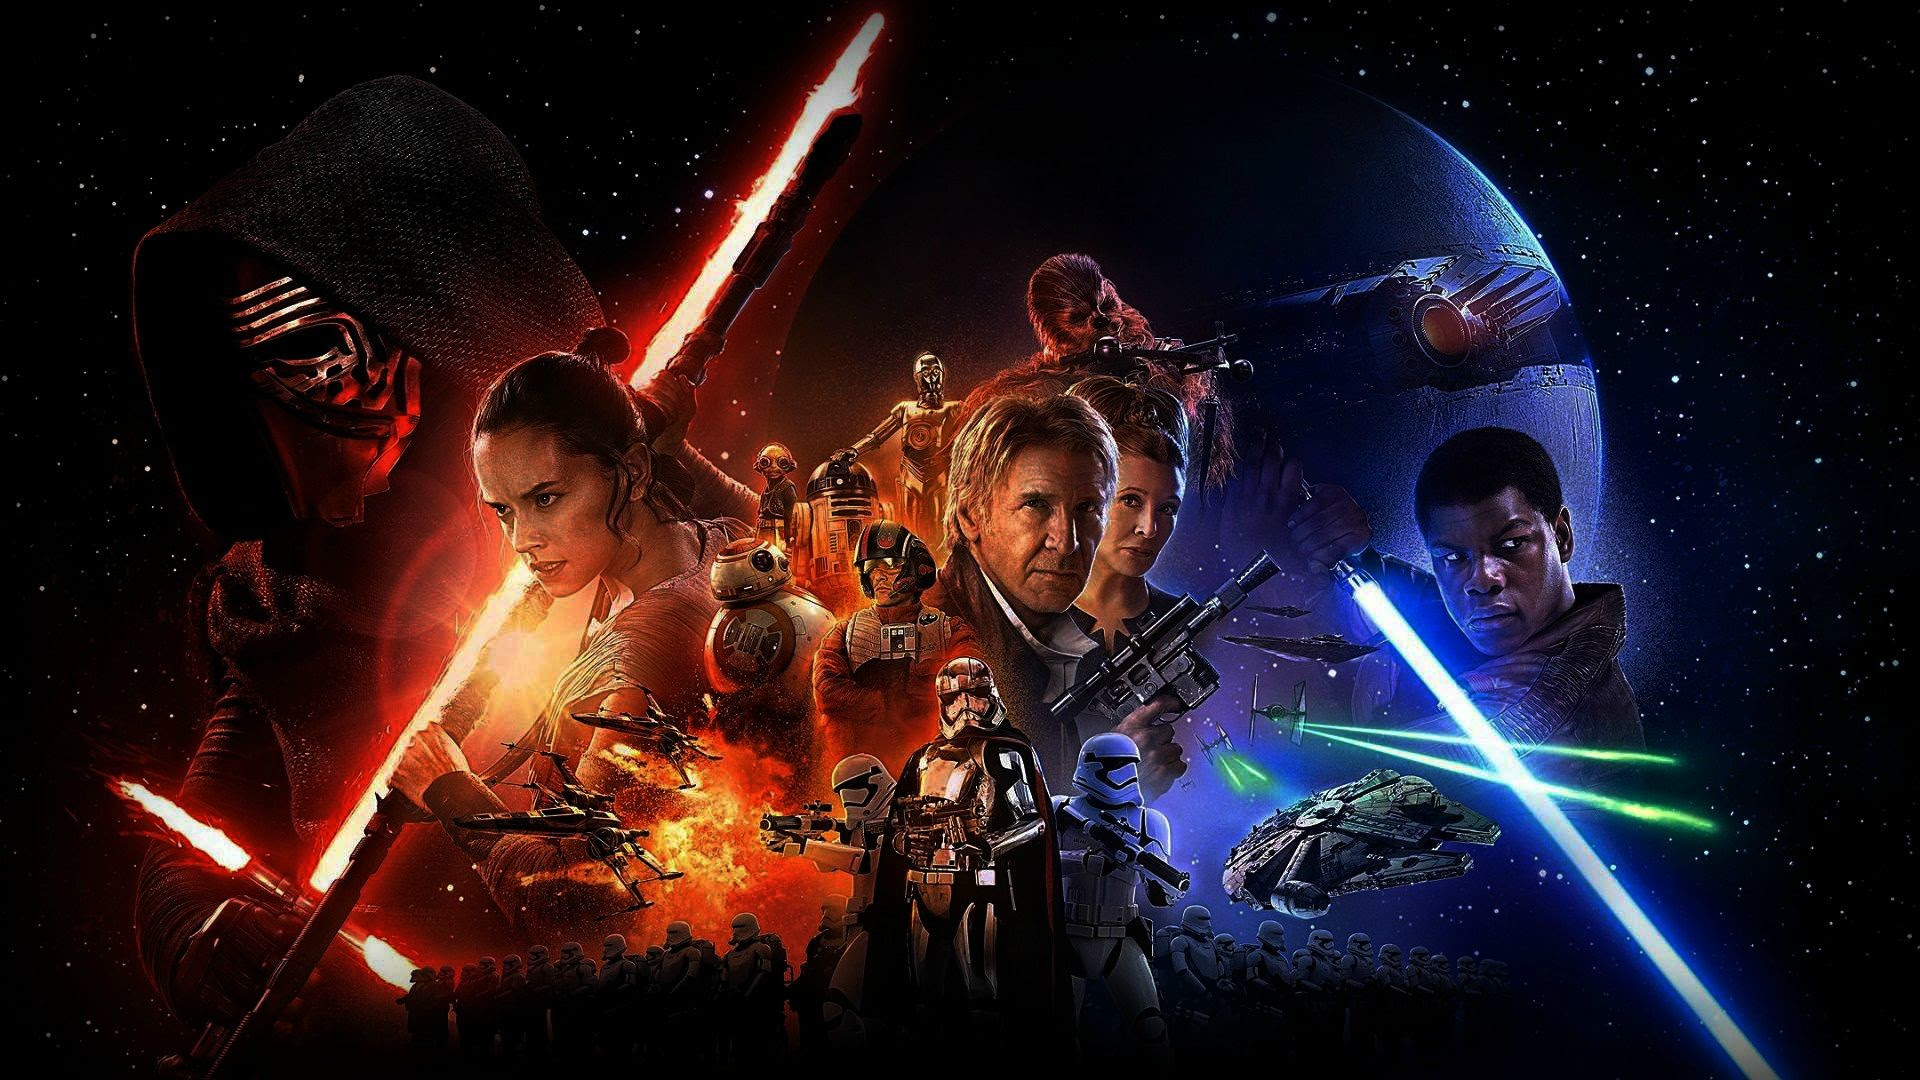 Star Wars The Force Awakens Wallpapers Hd 76 Images